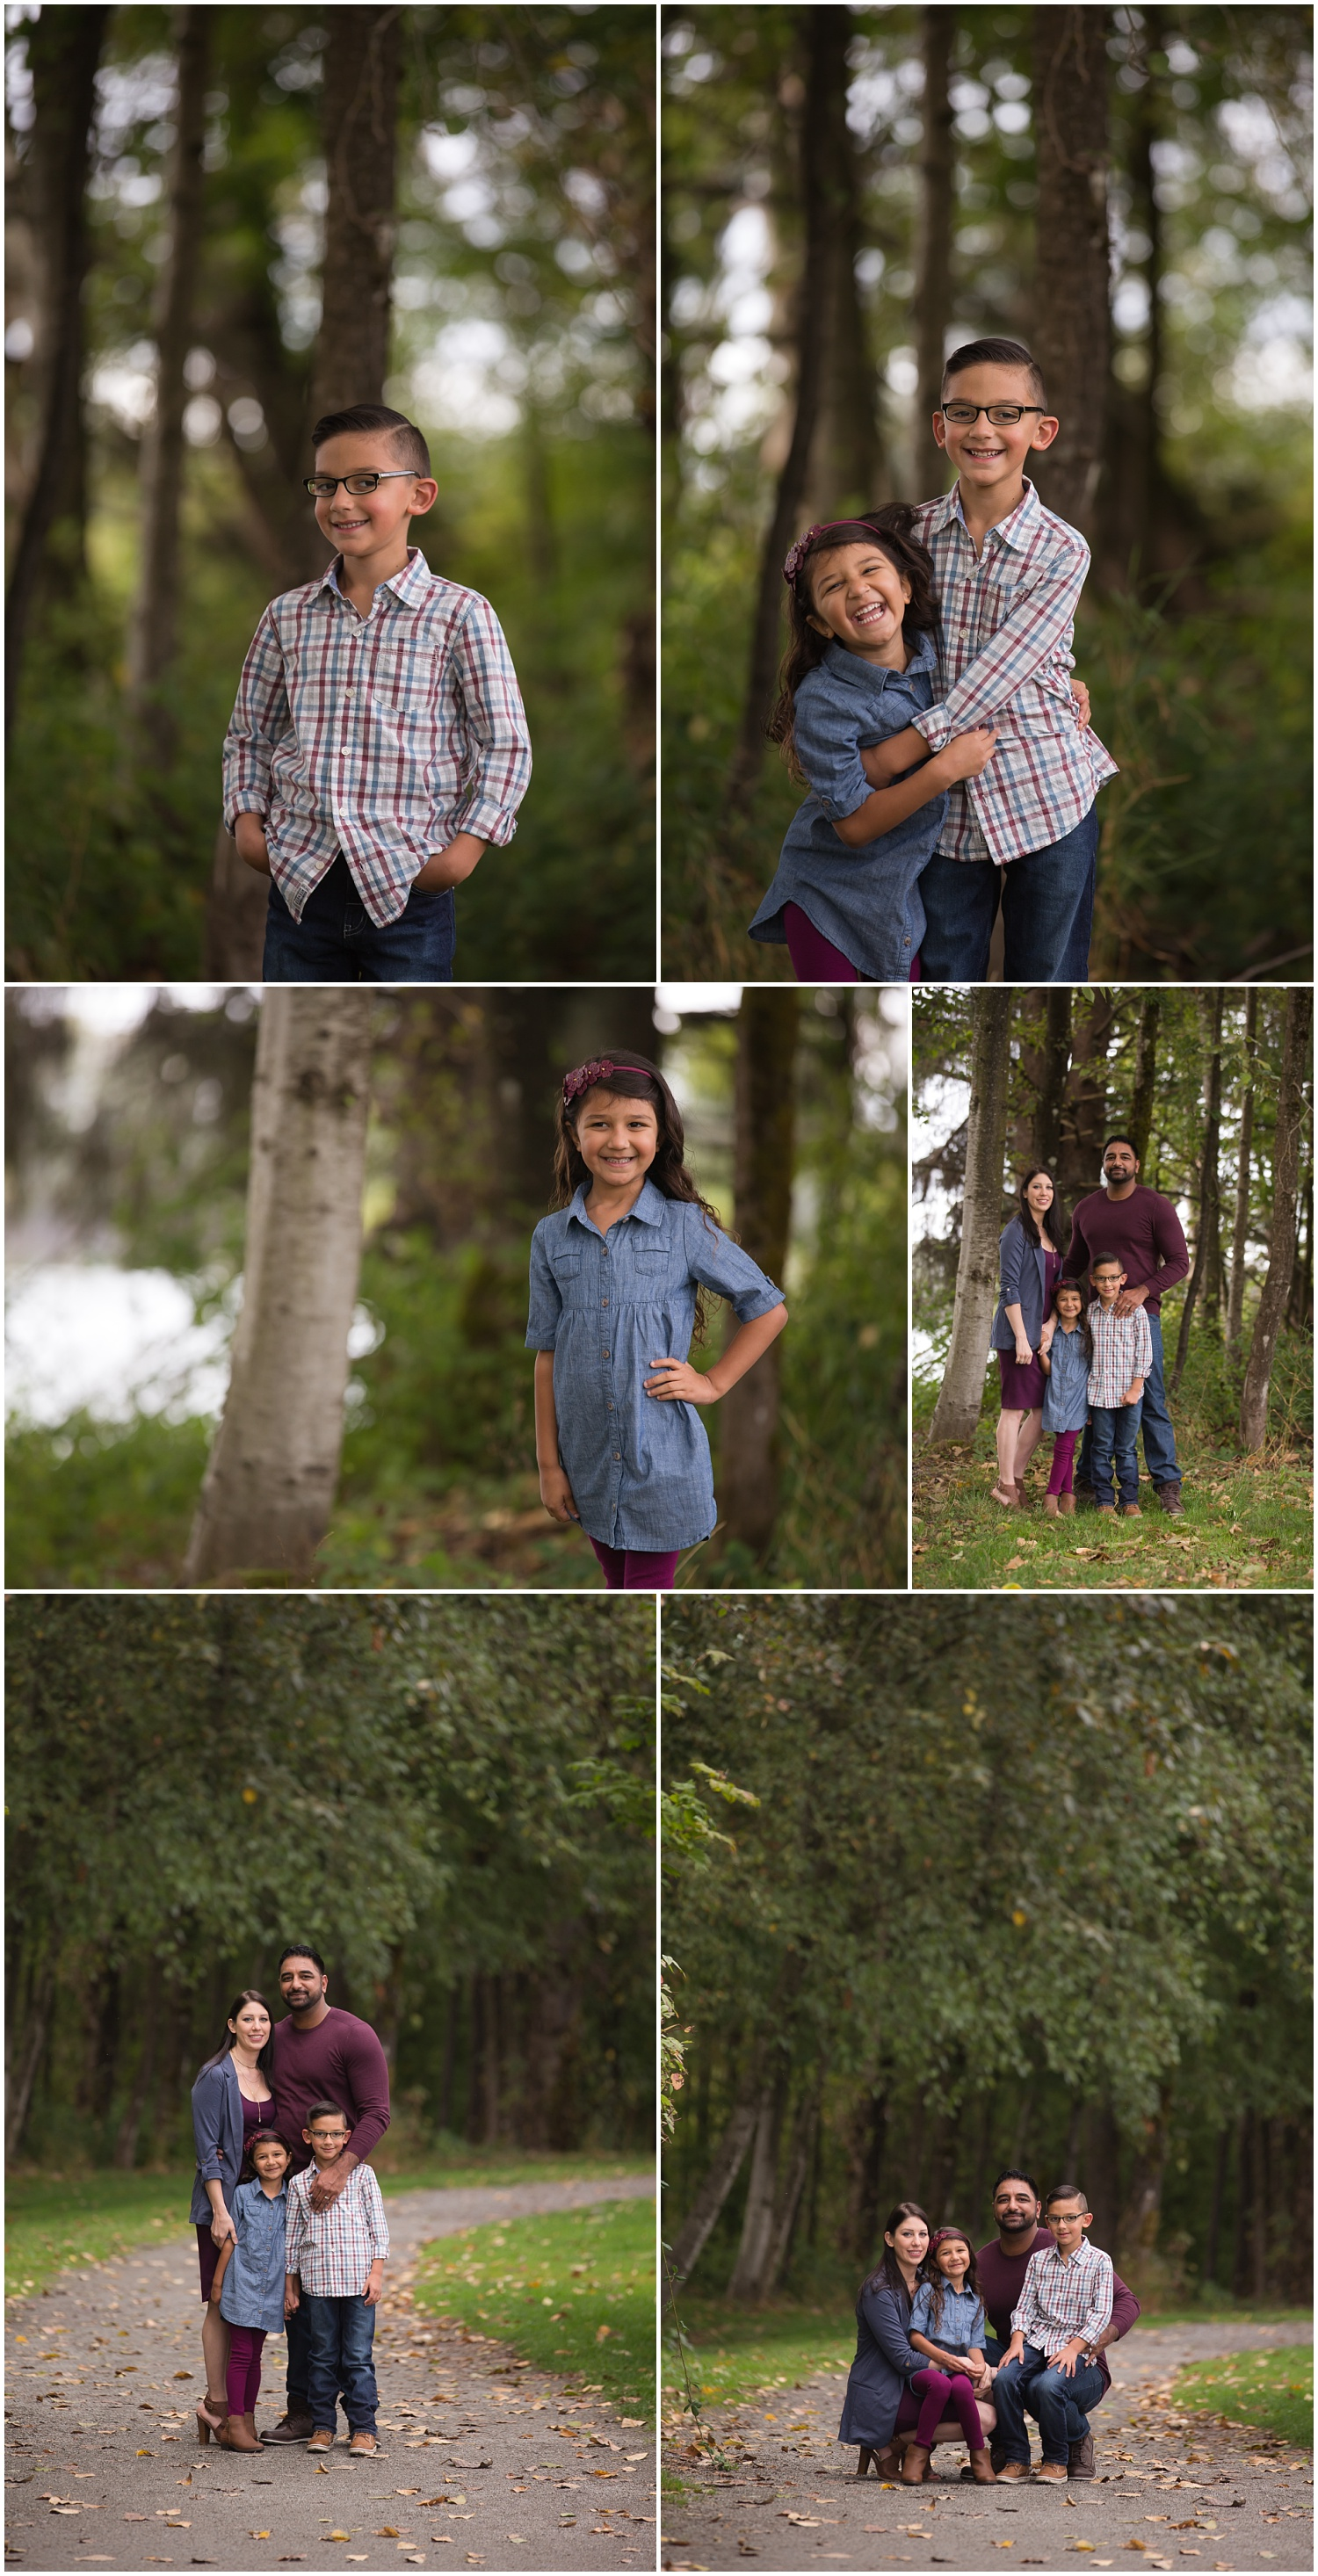 Amazing Day Photography - Fall Mini Sessions - Fall Family Photos - Langley Family Photographer (5).jpg